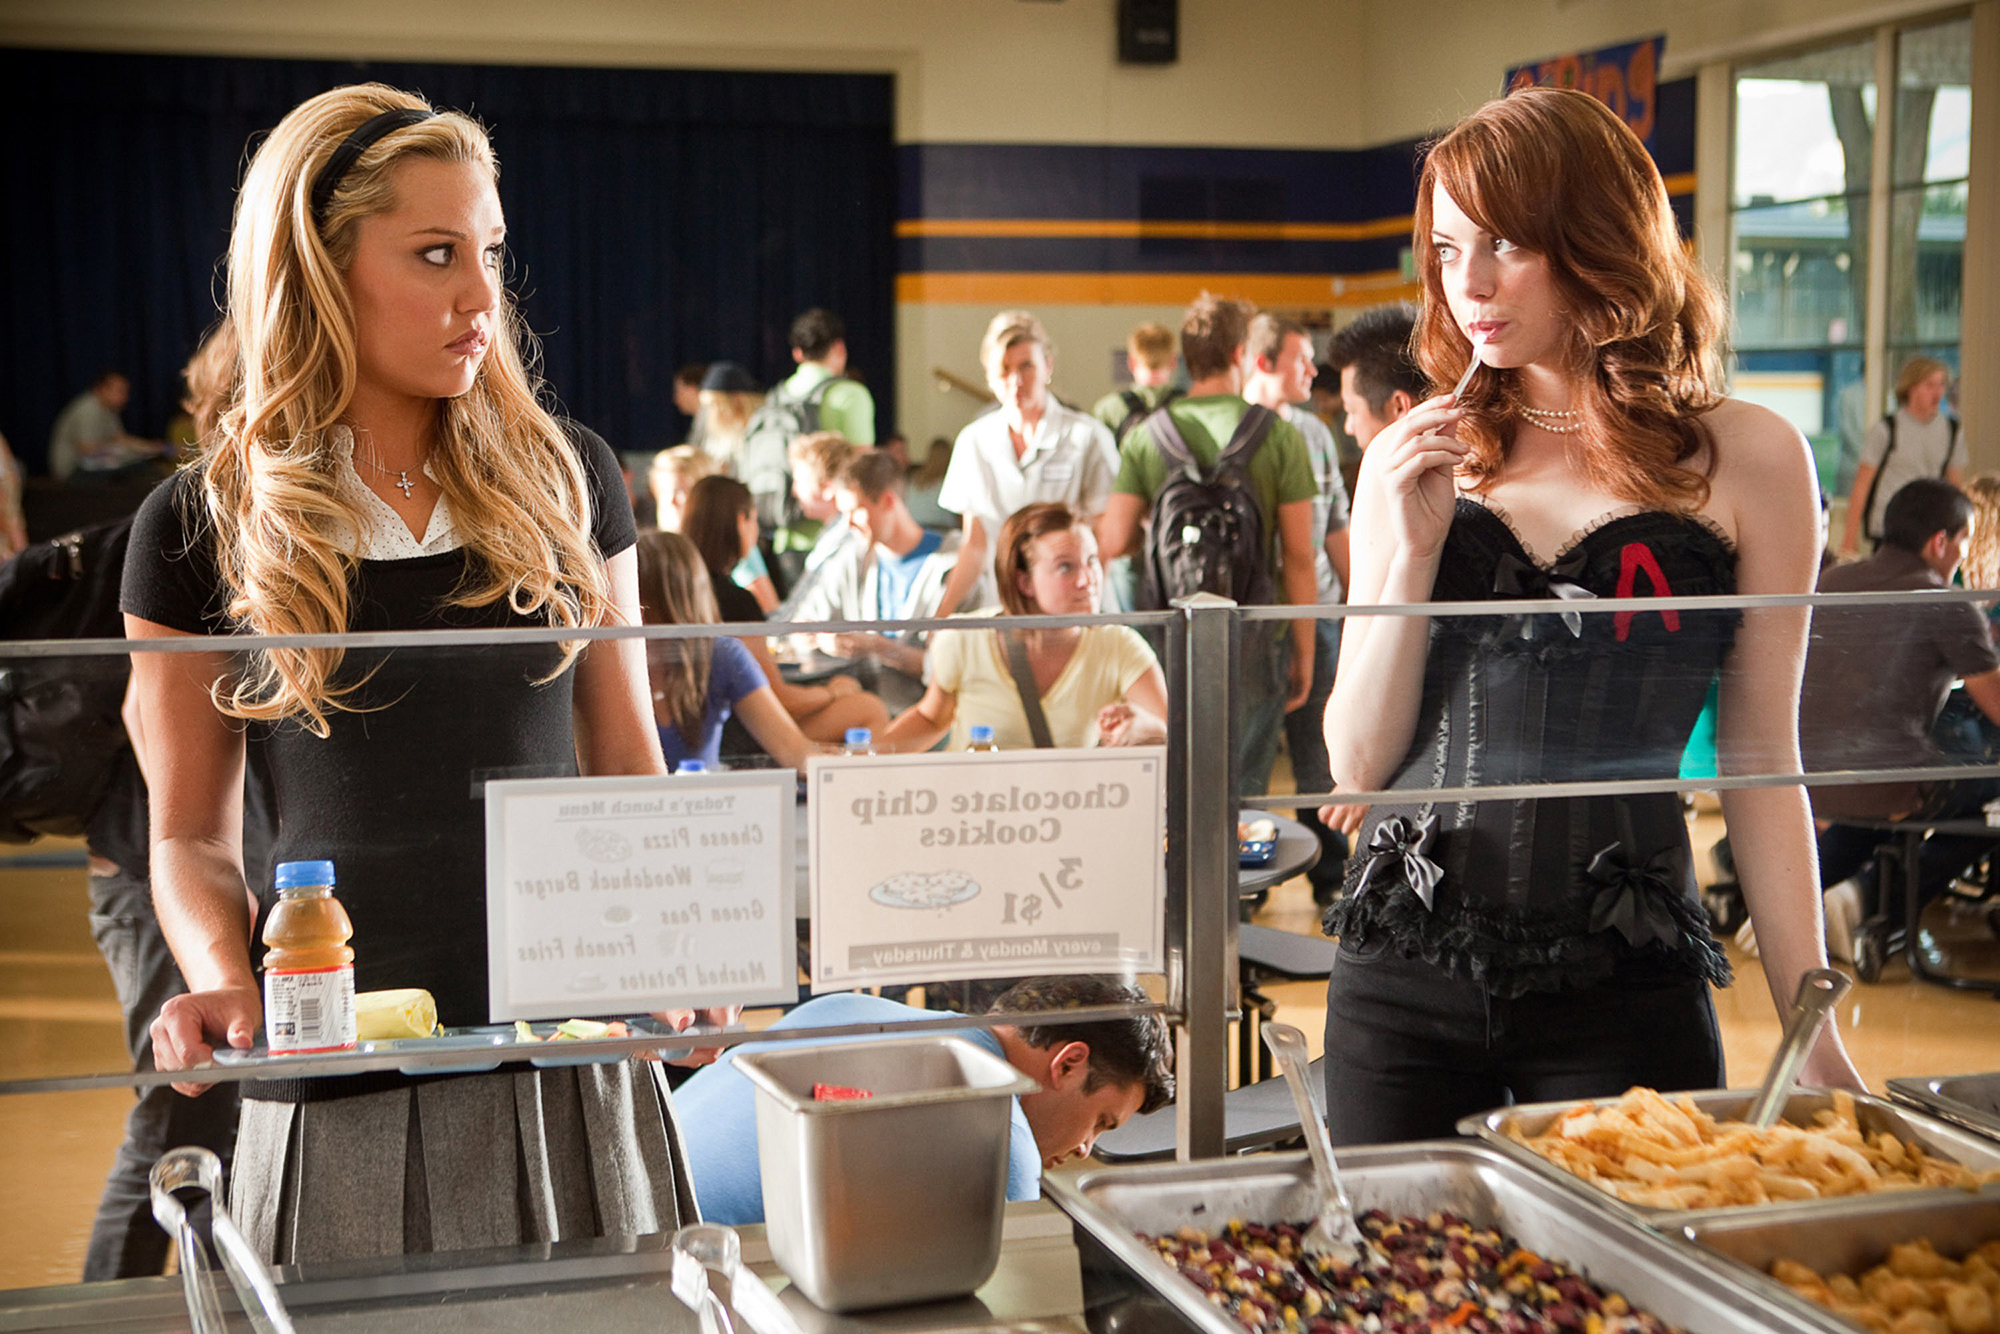 EASY A, from left: Amanda Bynes, Emma Stone, 2010. ph: Adam Taylor/©Screen Gems/Courtesy Everett Col